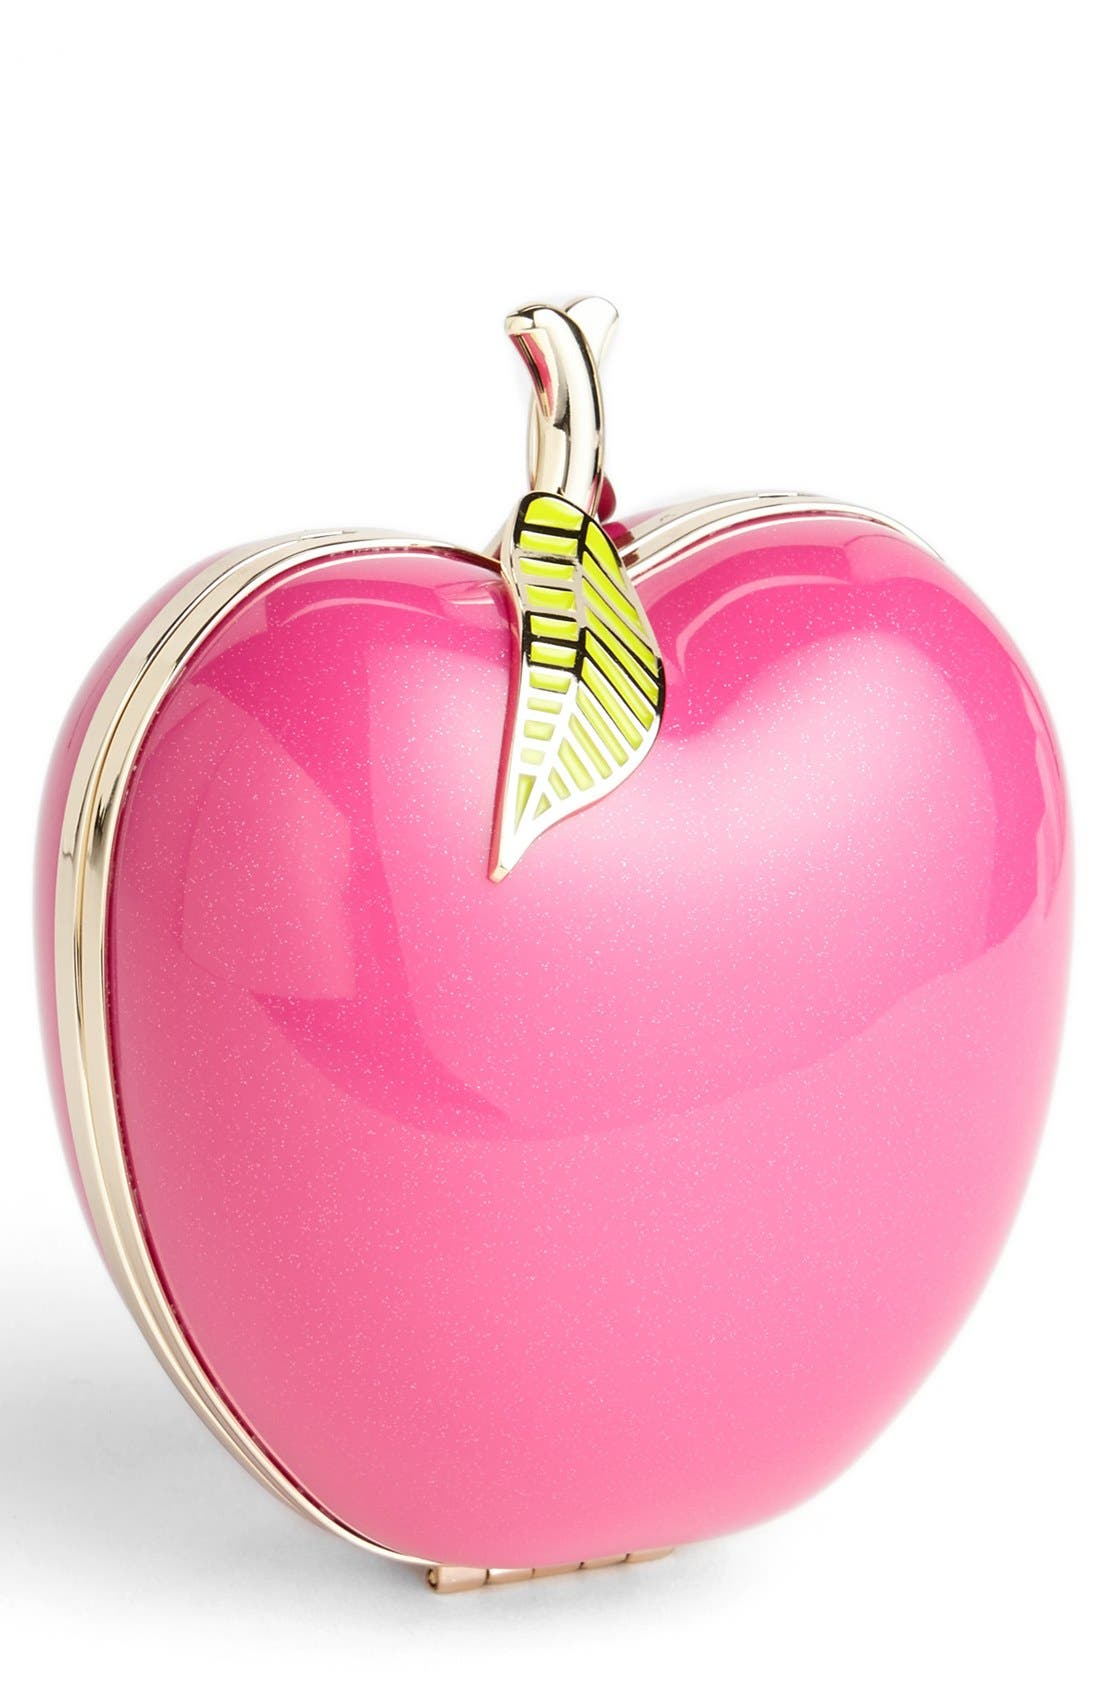 Alternate Image 1 Selected - kate spade new york 'far from the tree - apple' clutch